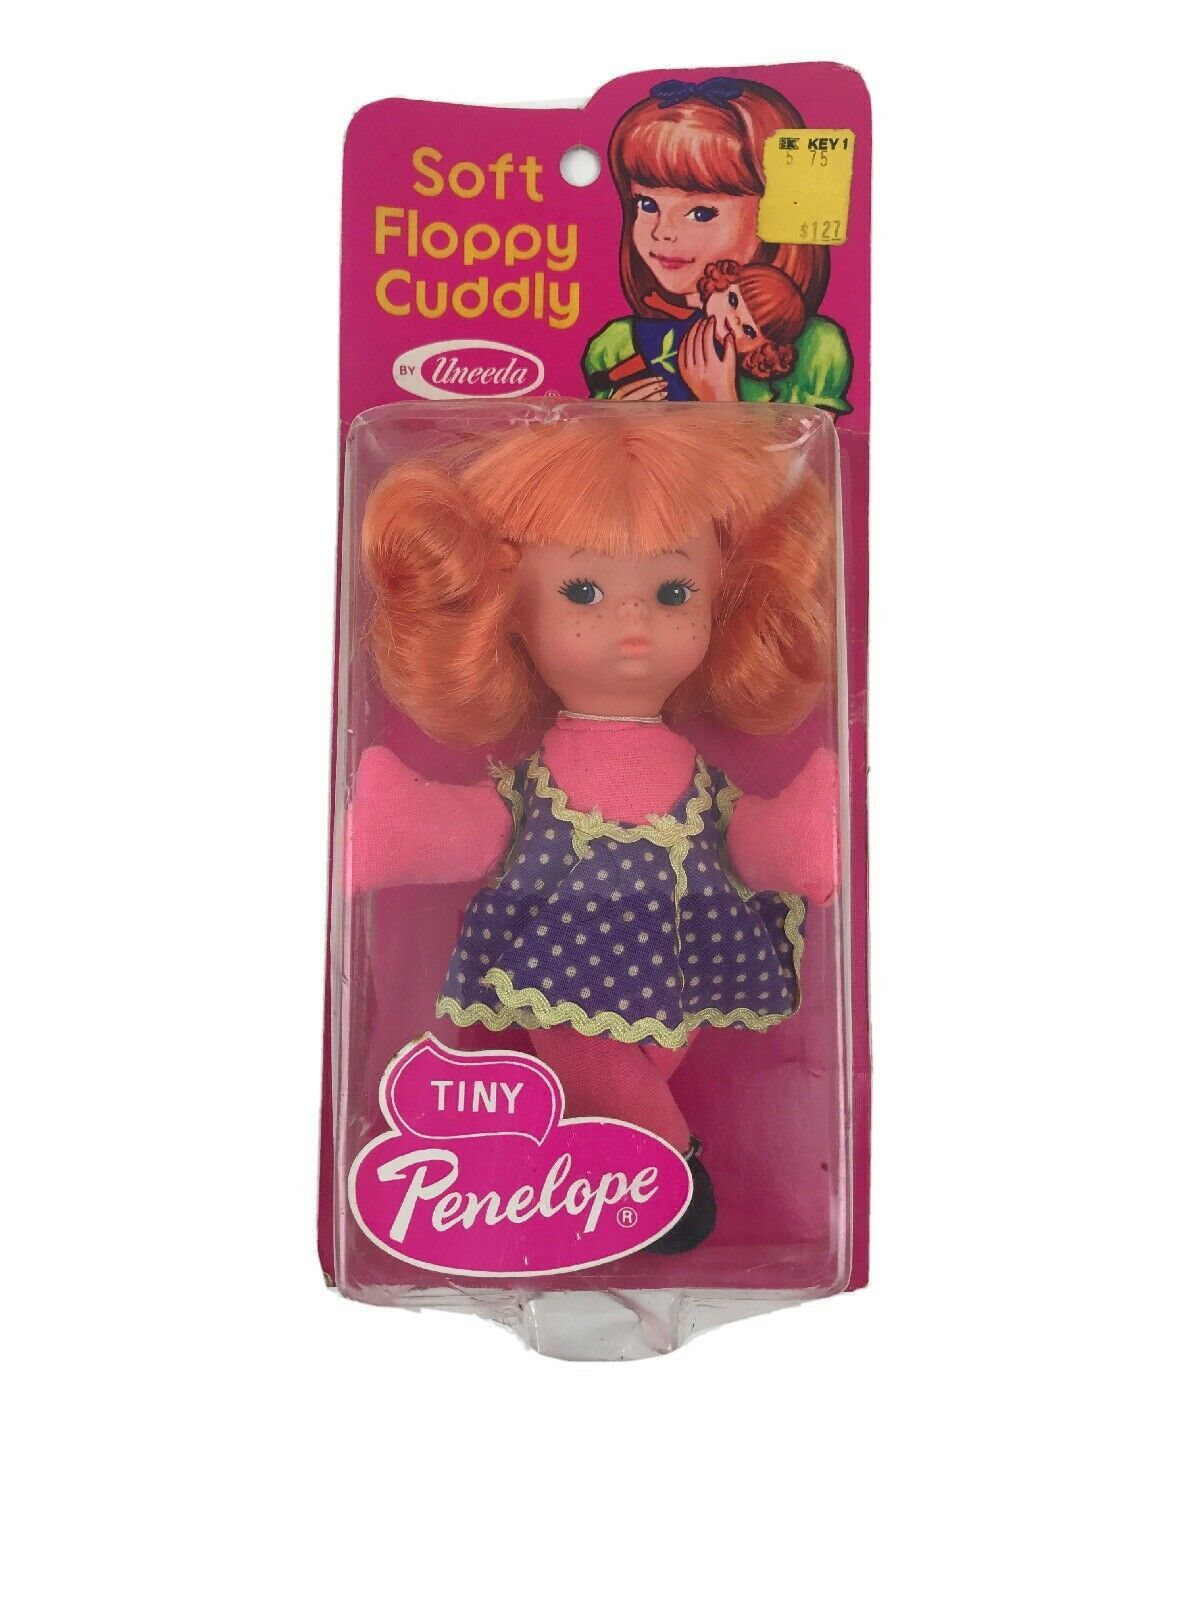 """Vintage 1974 Tiny Penelope Fashion Doll Mod Groovy Uneeda Made In Hong Kong 6"""" - $23.20"""